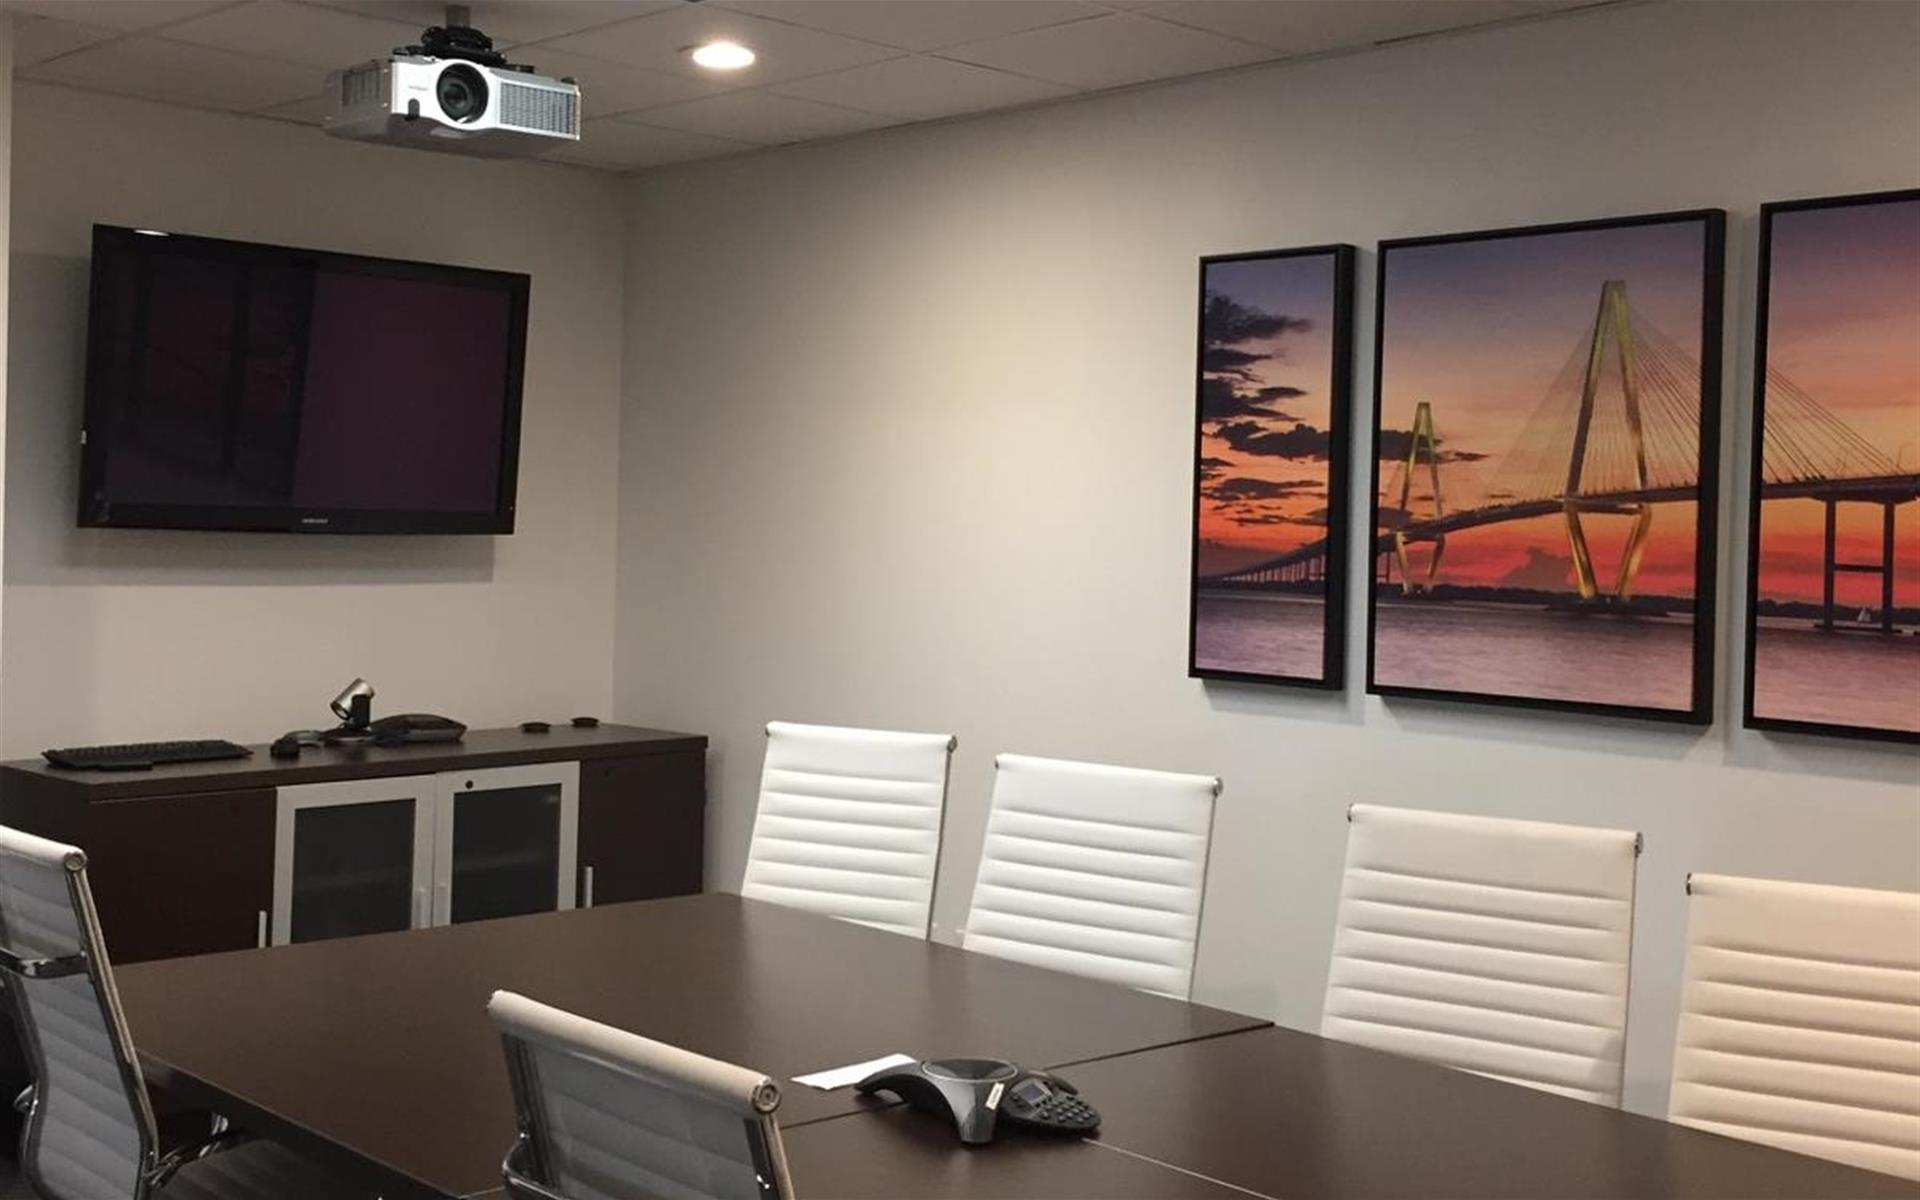 Magna Legal Services - Videoconference/Small Conference Room